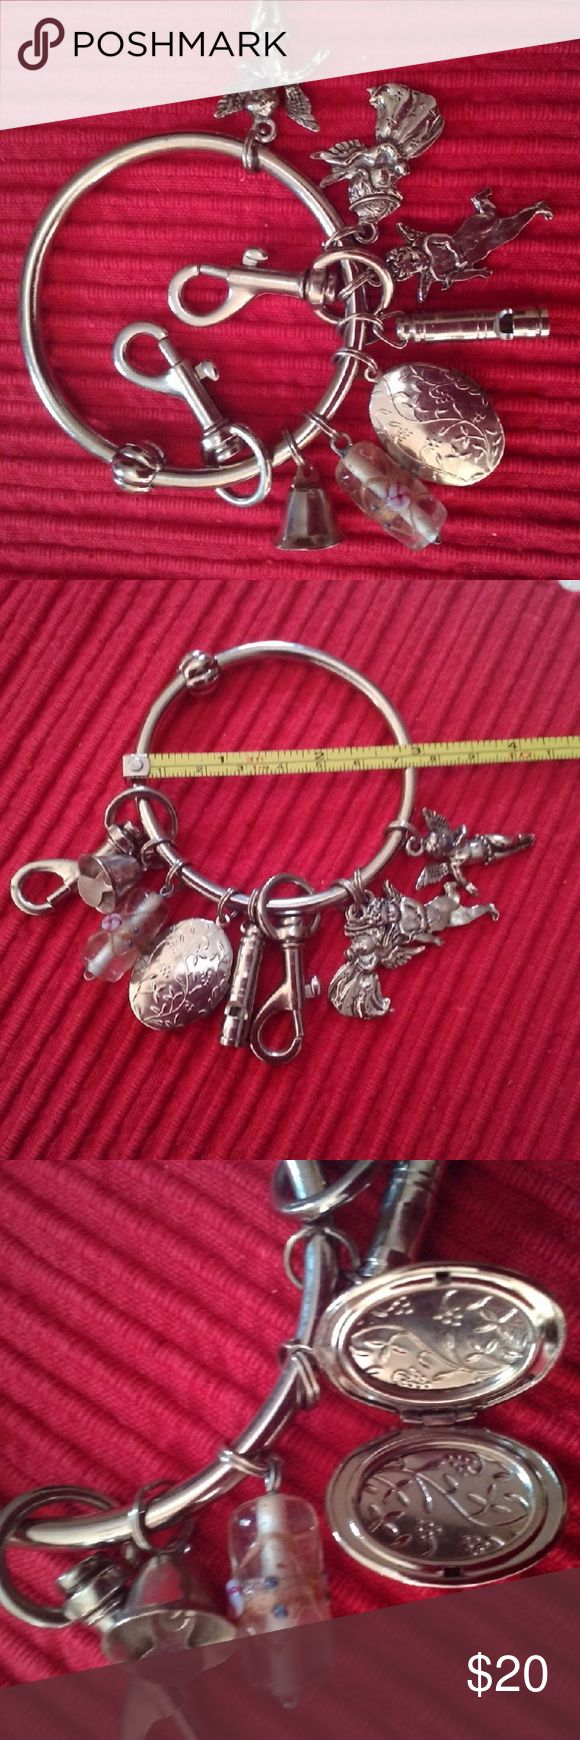 Keyring With Seven Charms